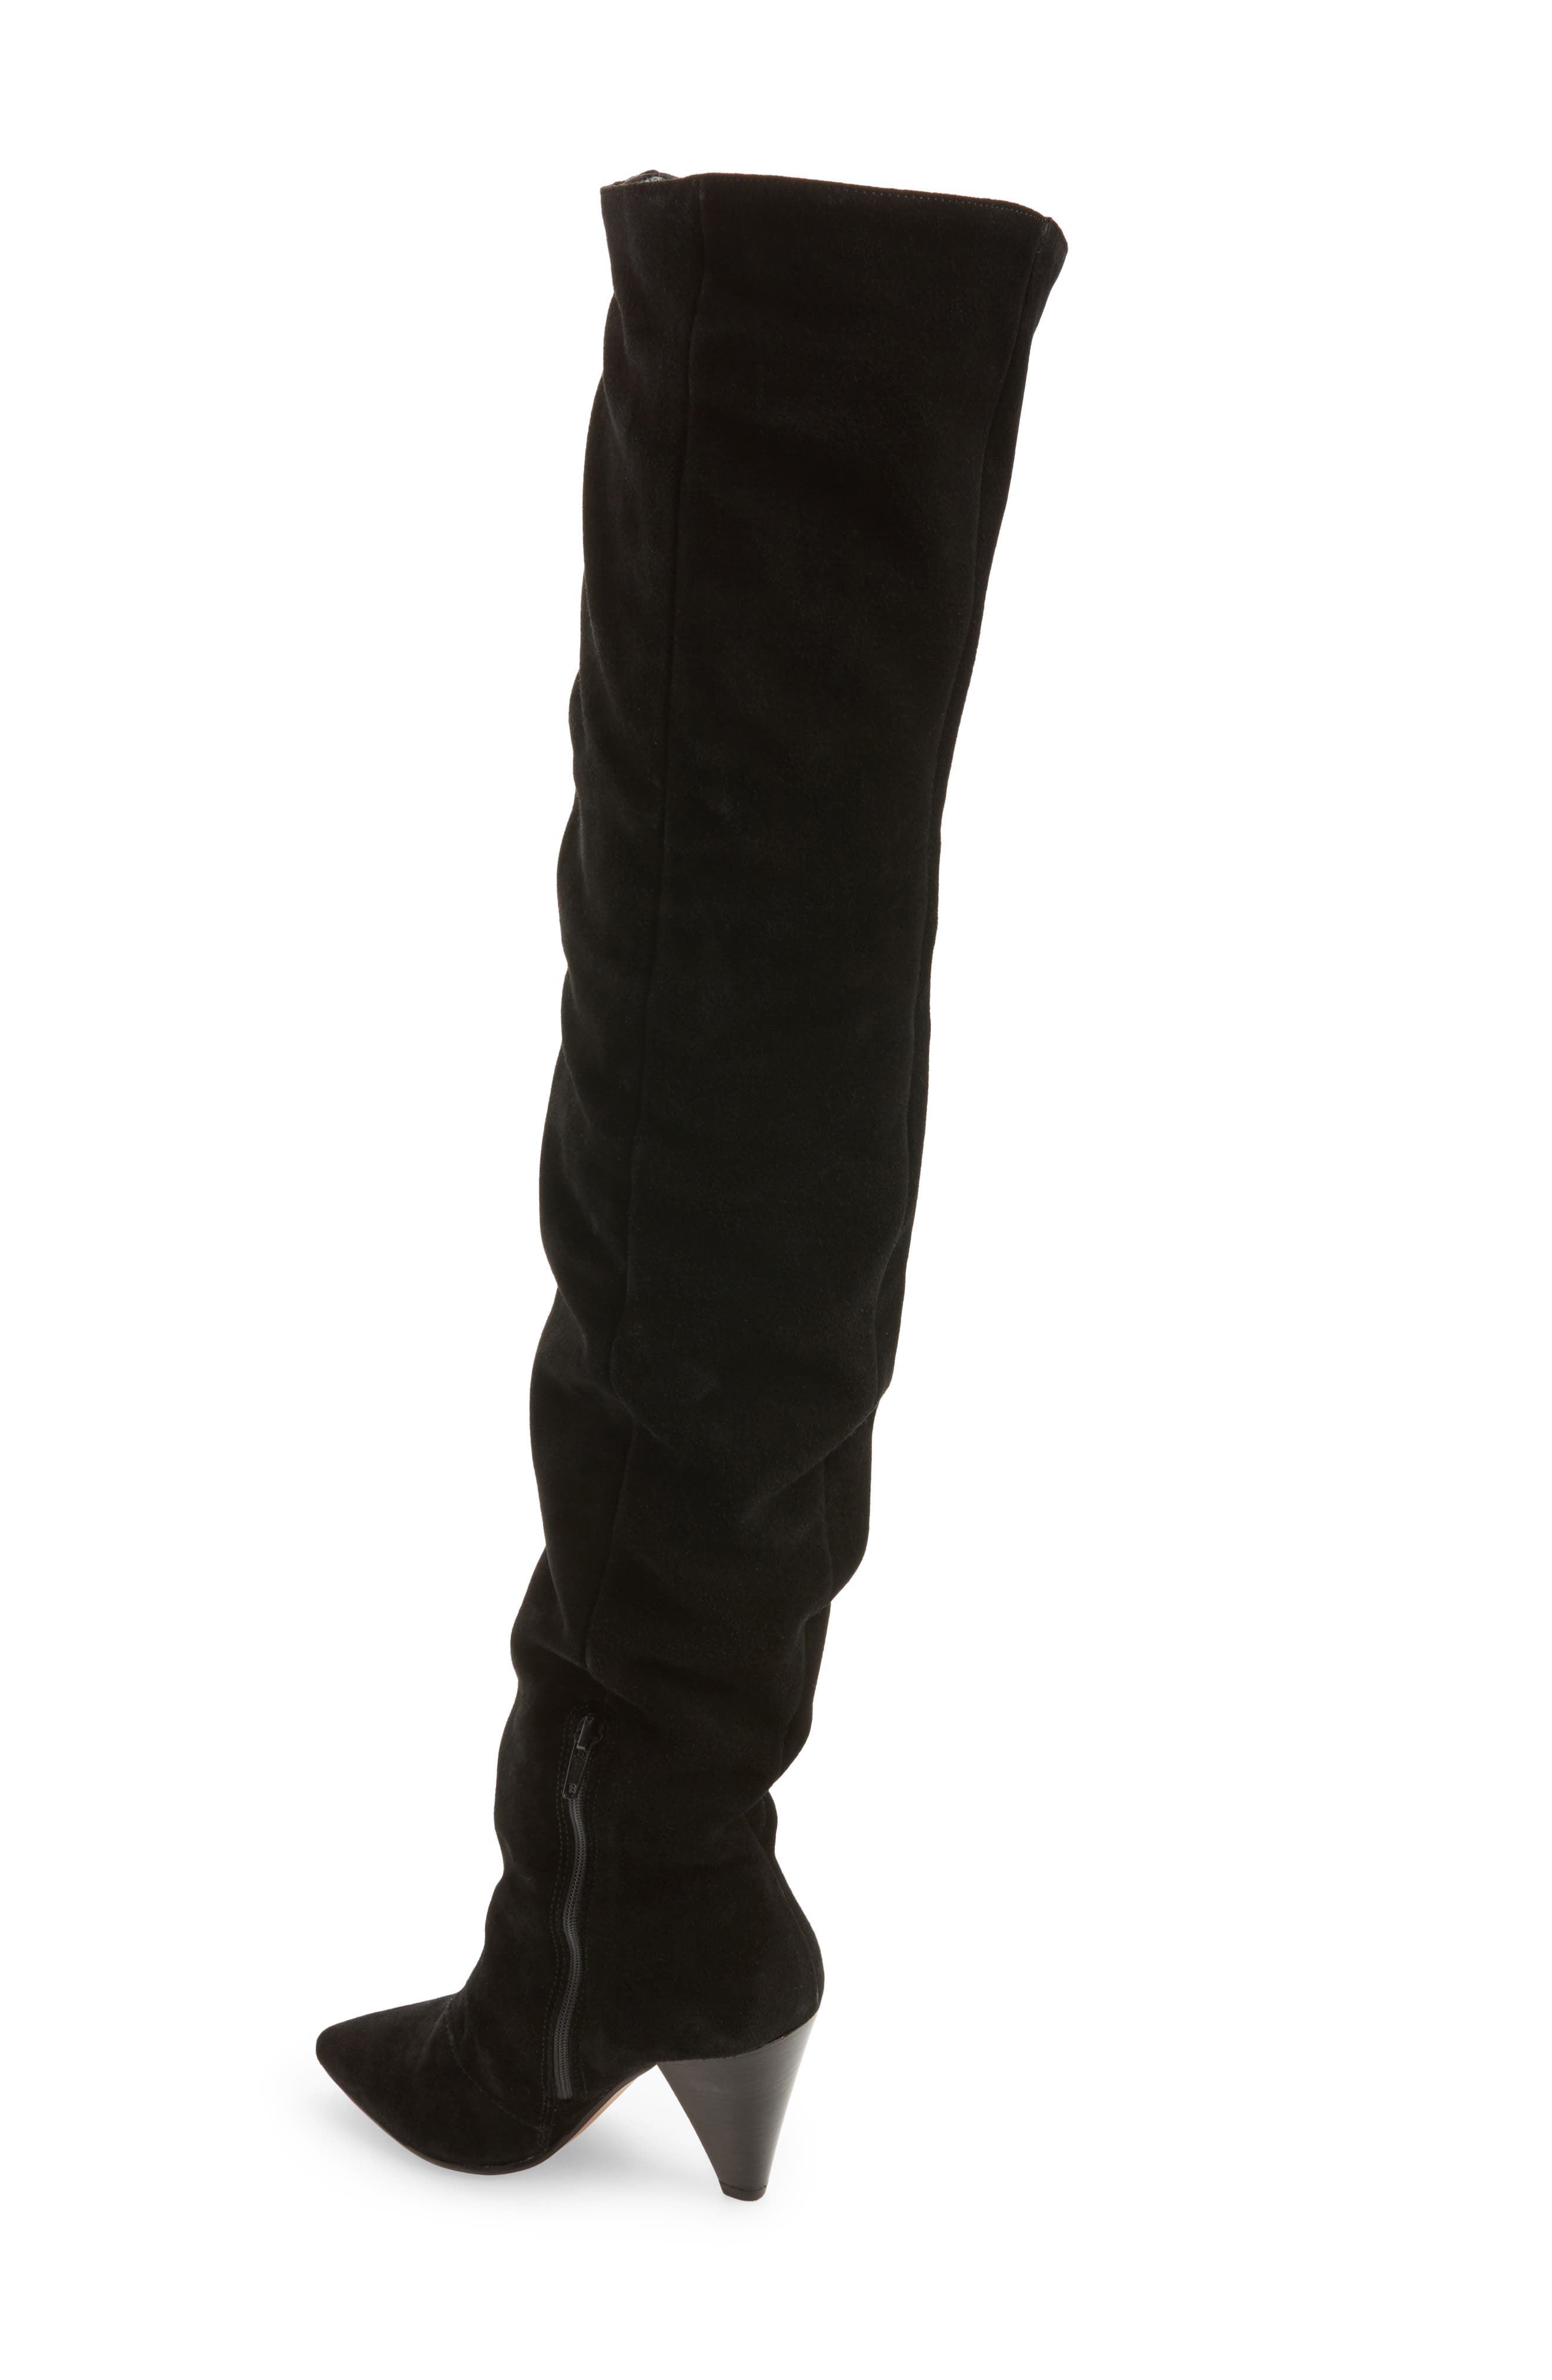 Boxer Thigh High Boots,                             Alternate thumbnail 2, color,                             001